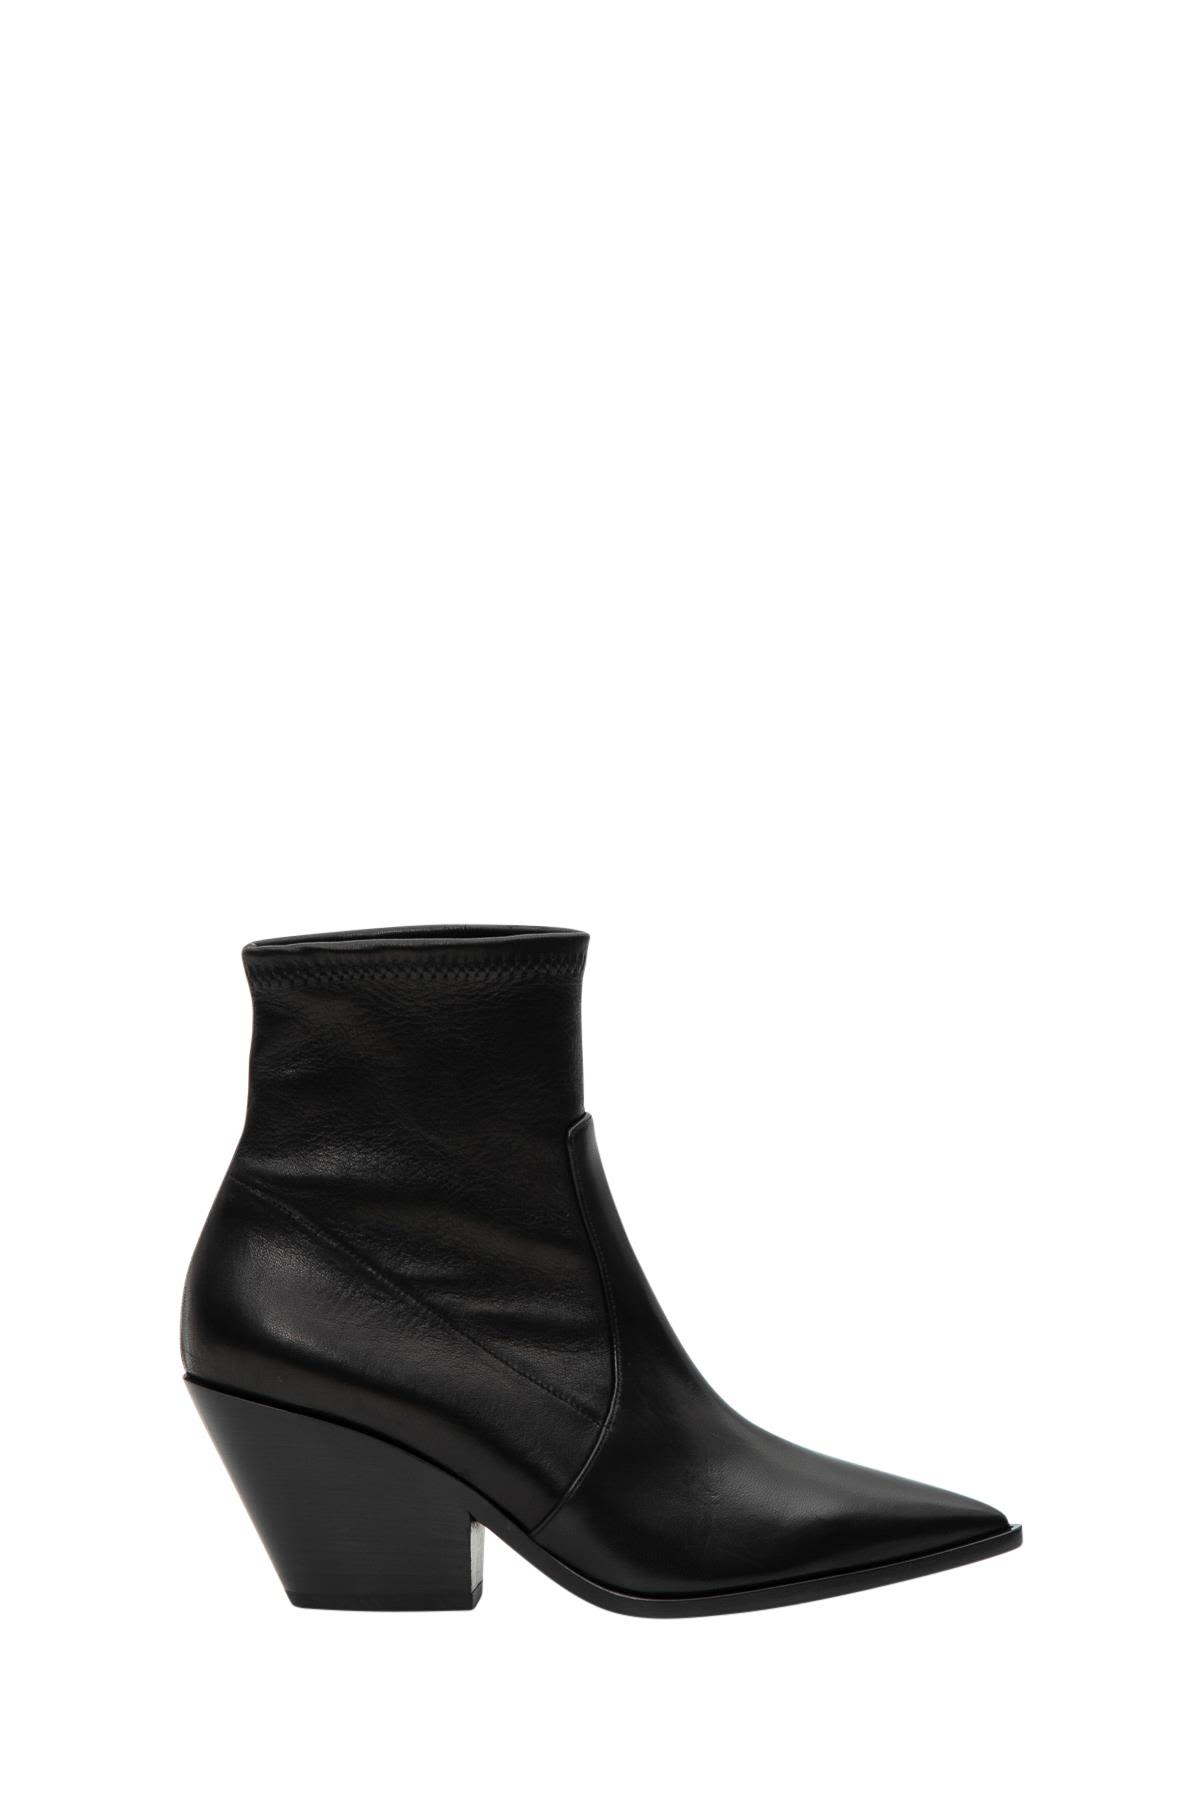 CASADEI TEXAN ANKLE BOOTS